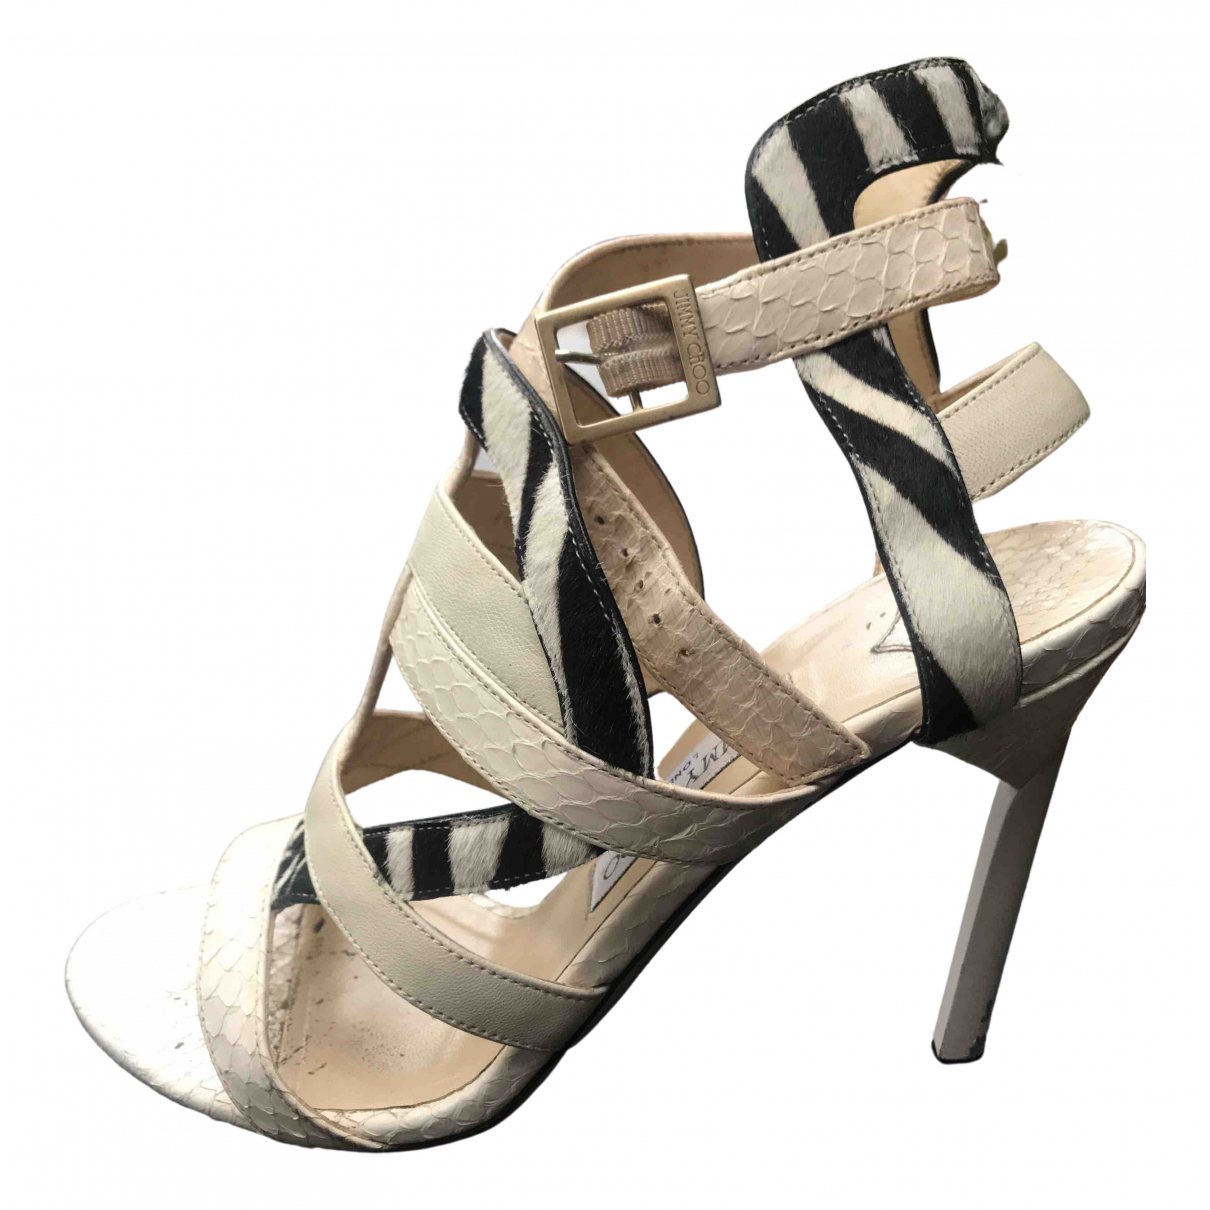 Jimmy Choo N White Pony-style calfskin Sandals for Women 40 EU